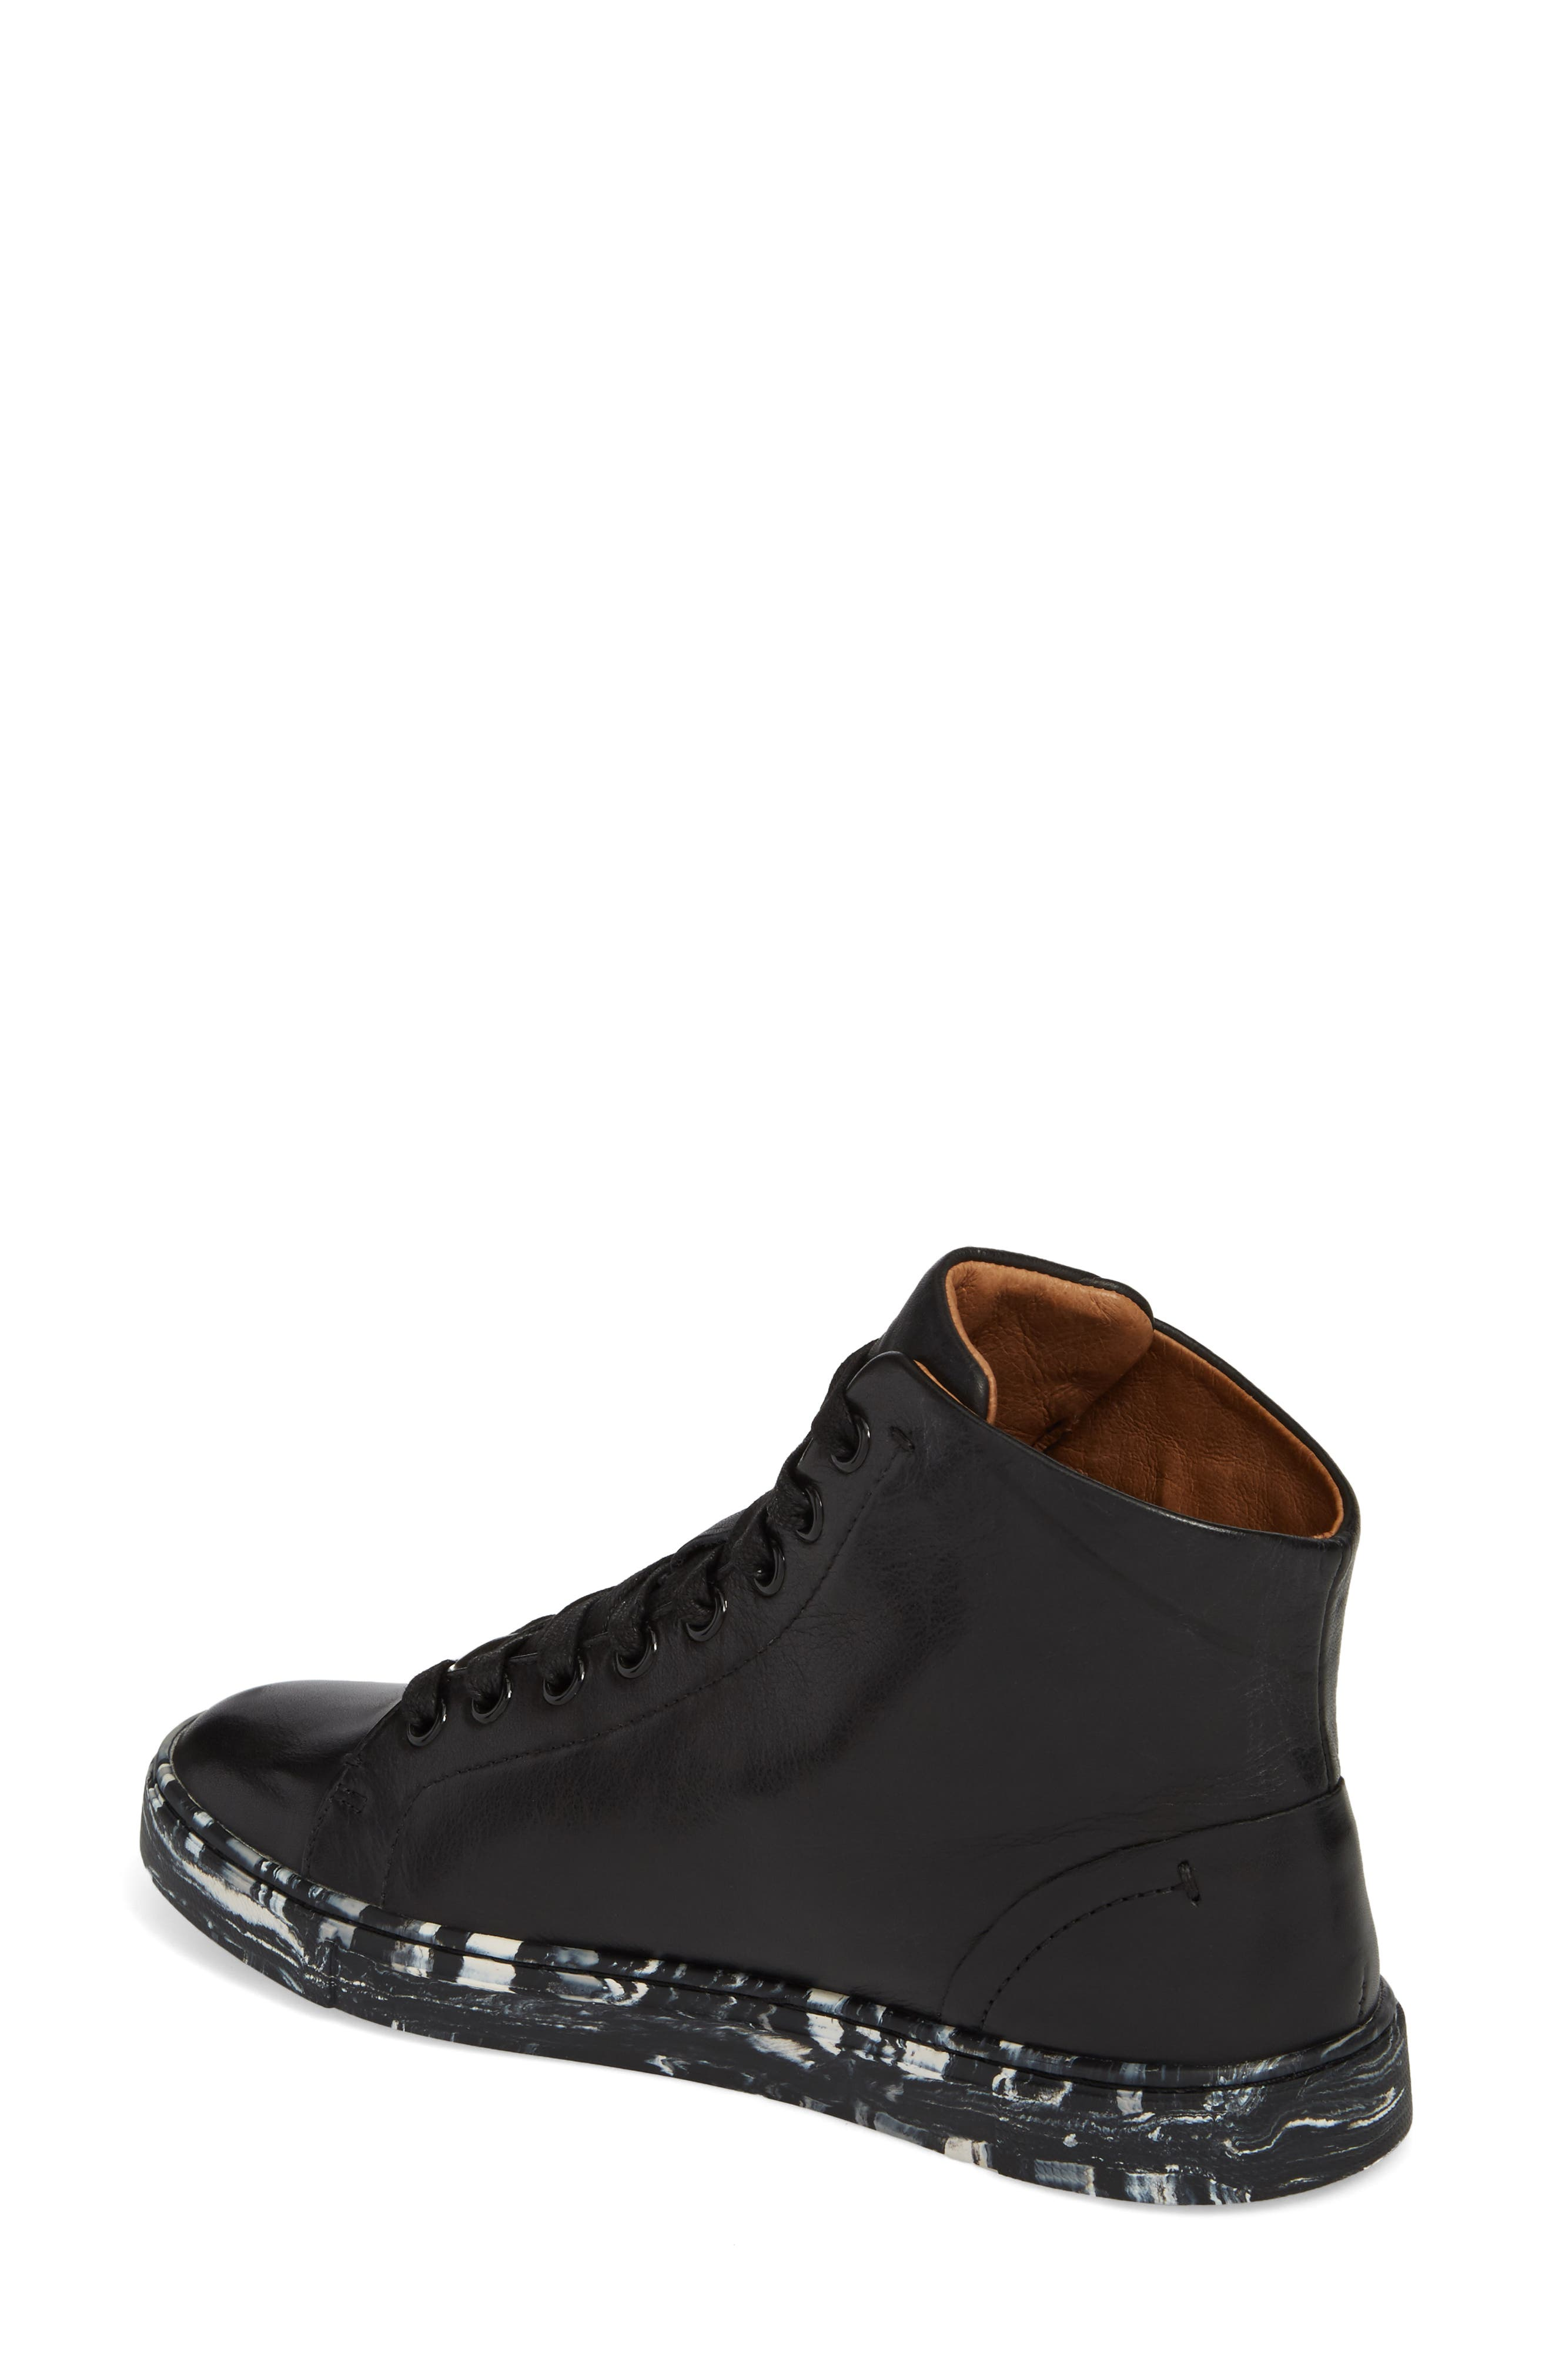 Ivy High Top Sneaker,                             Alternate thumbnail 2, color,                             001